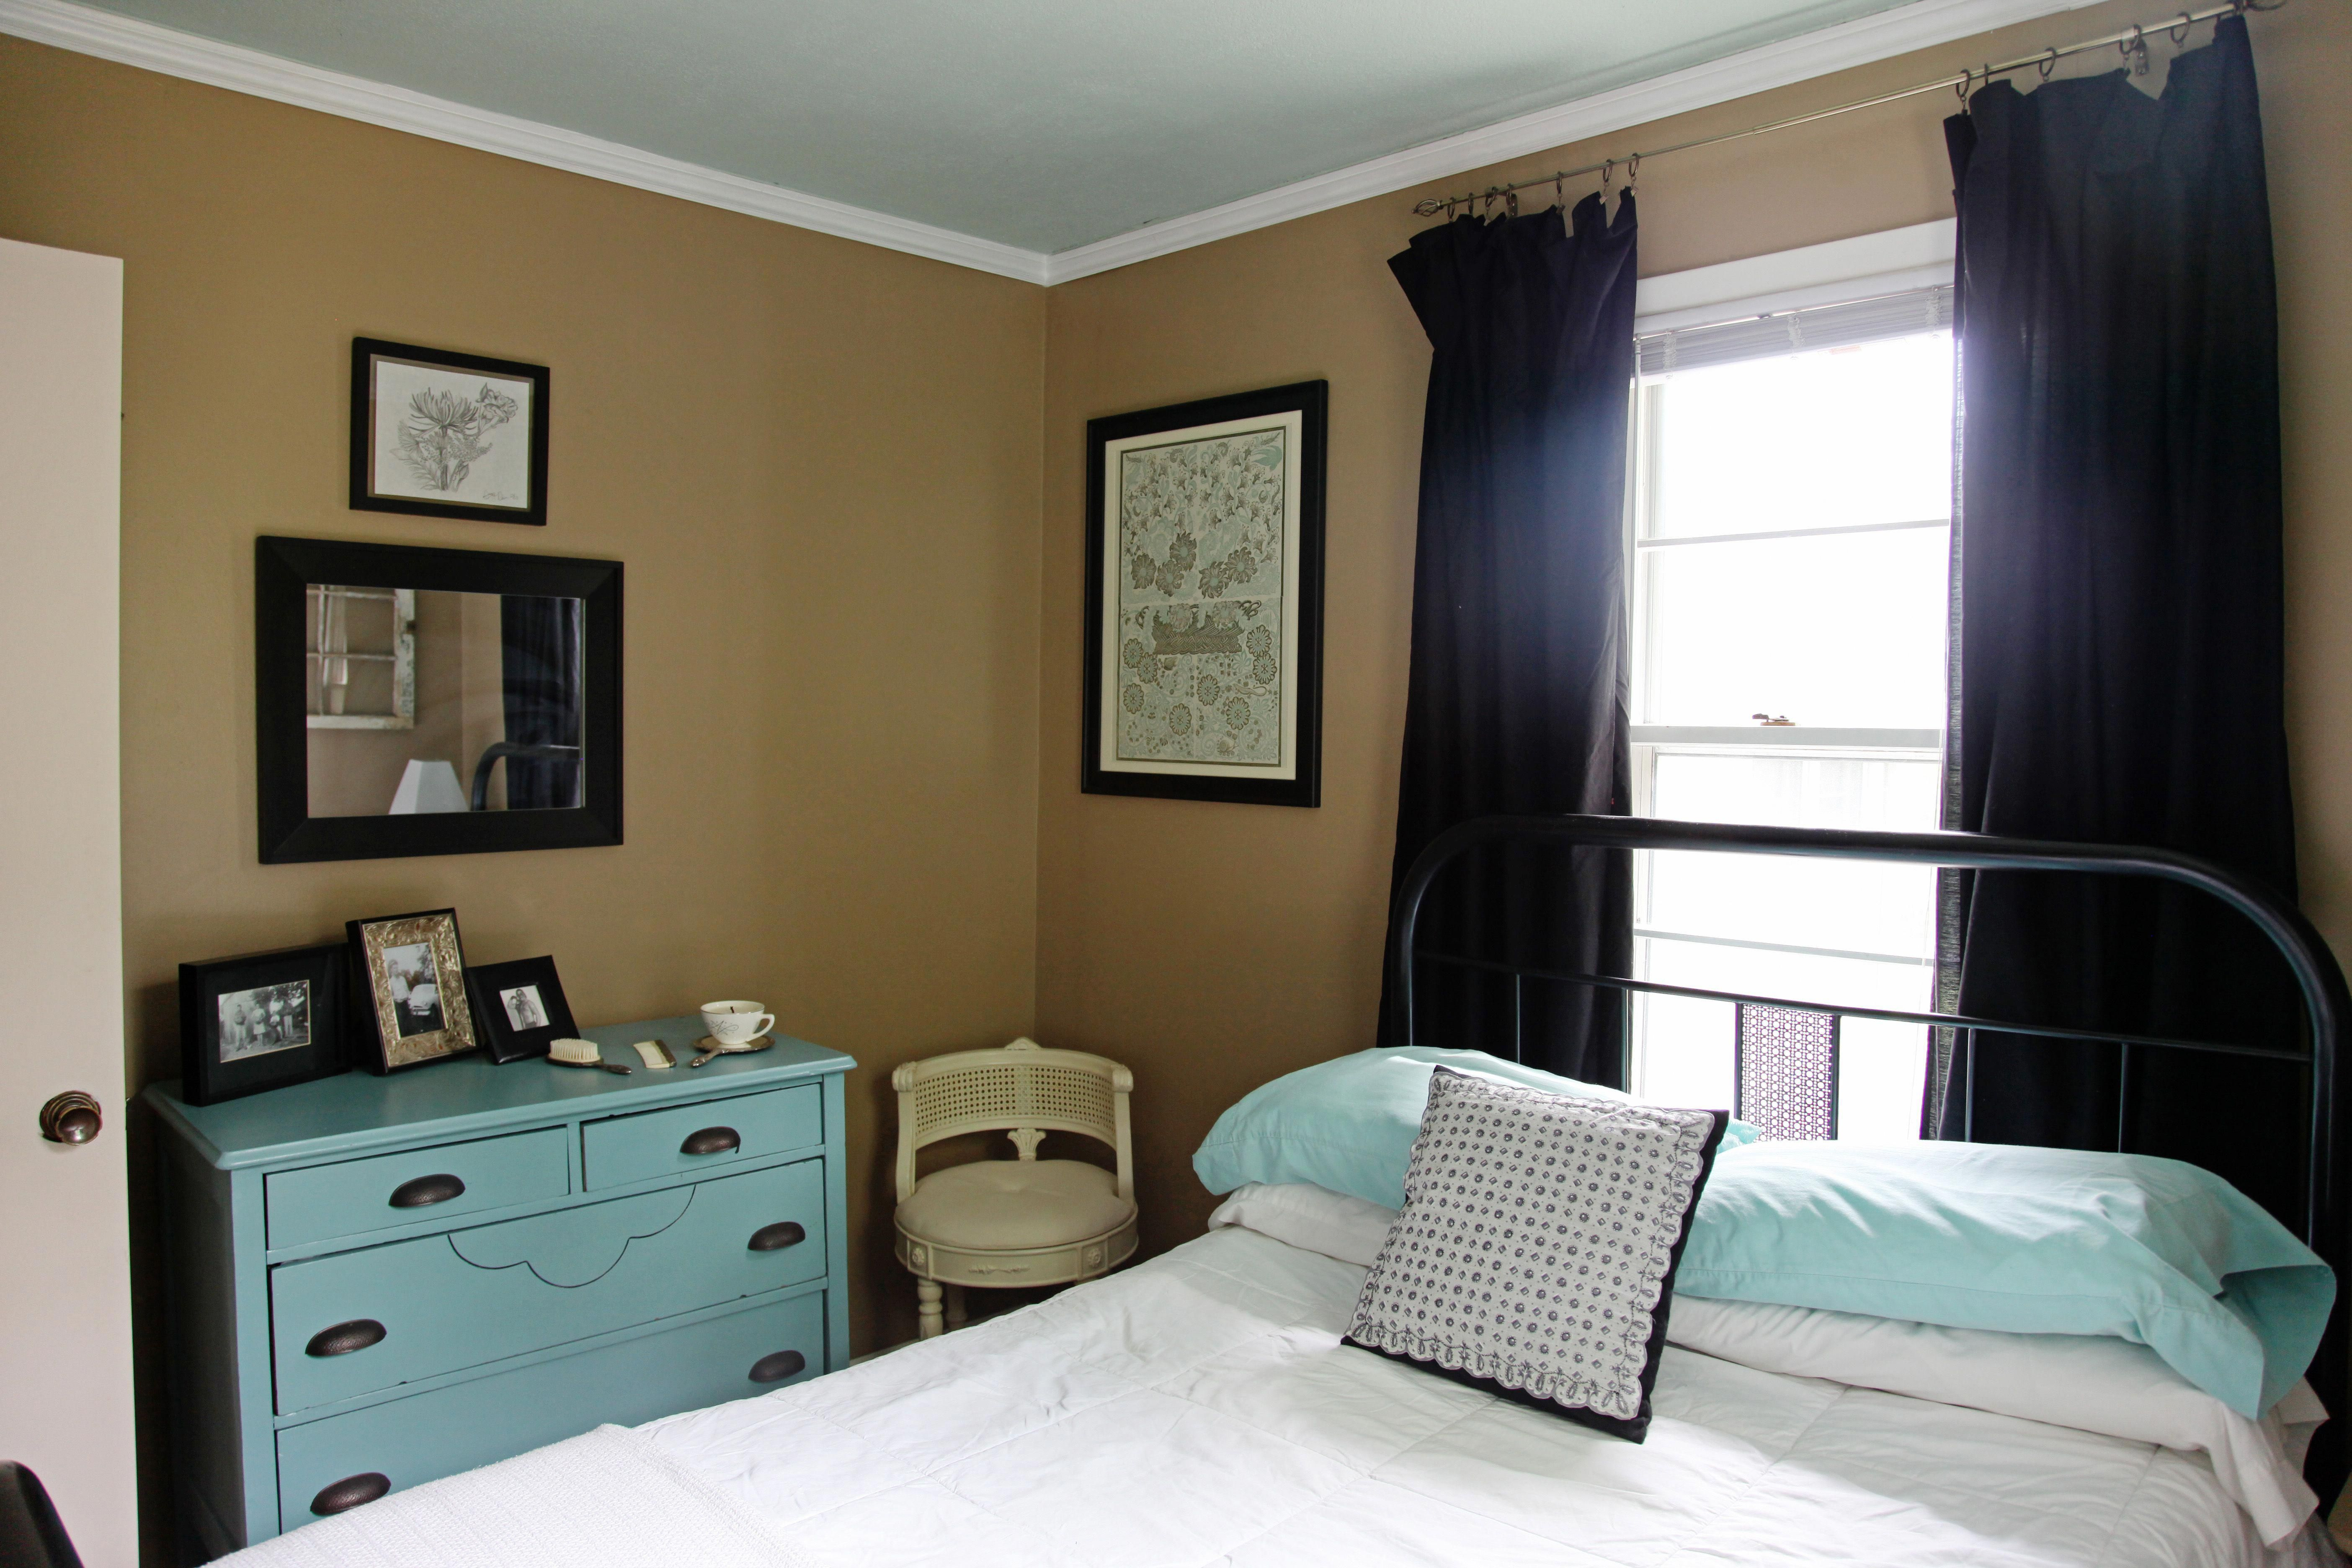 How to decorate a vintage guest room on a budget with diy ...